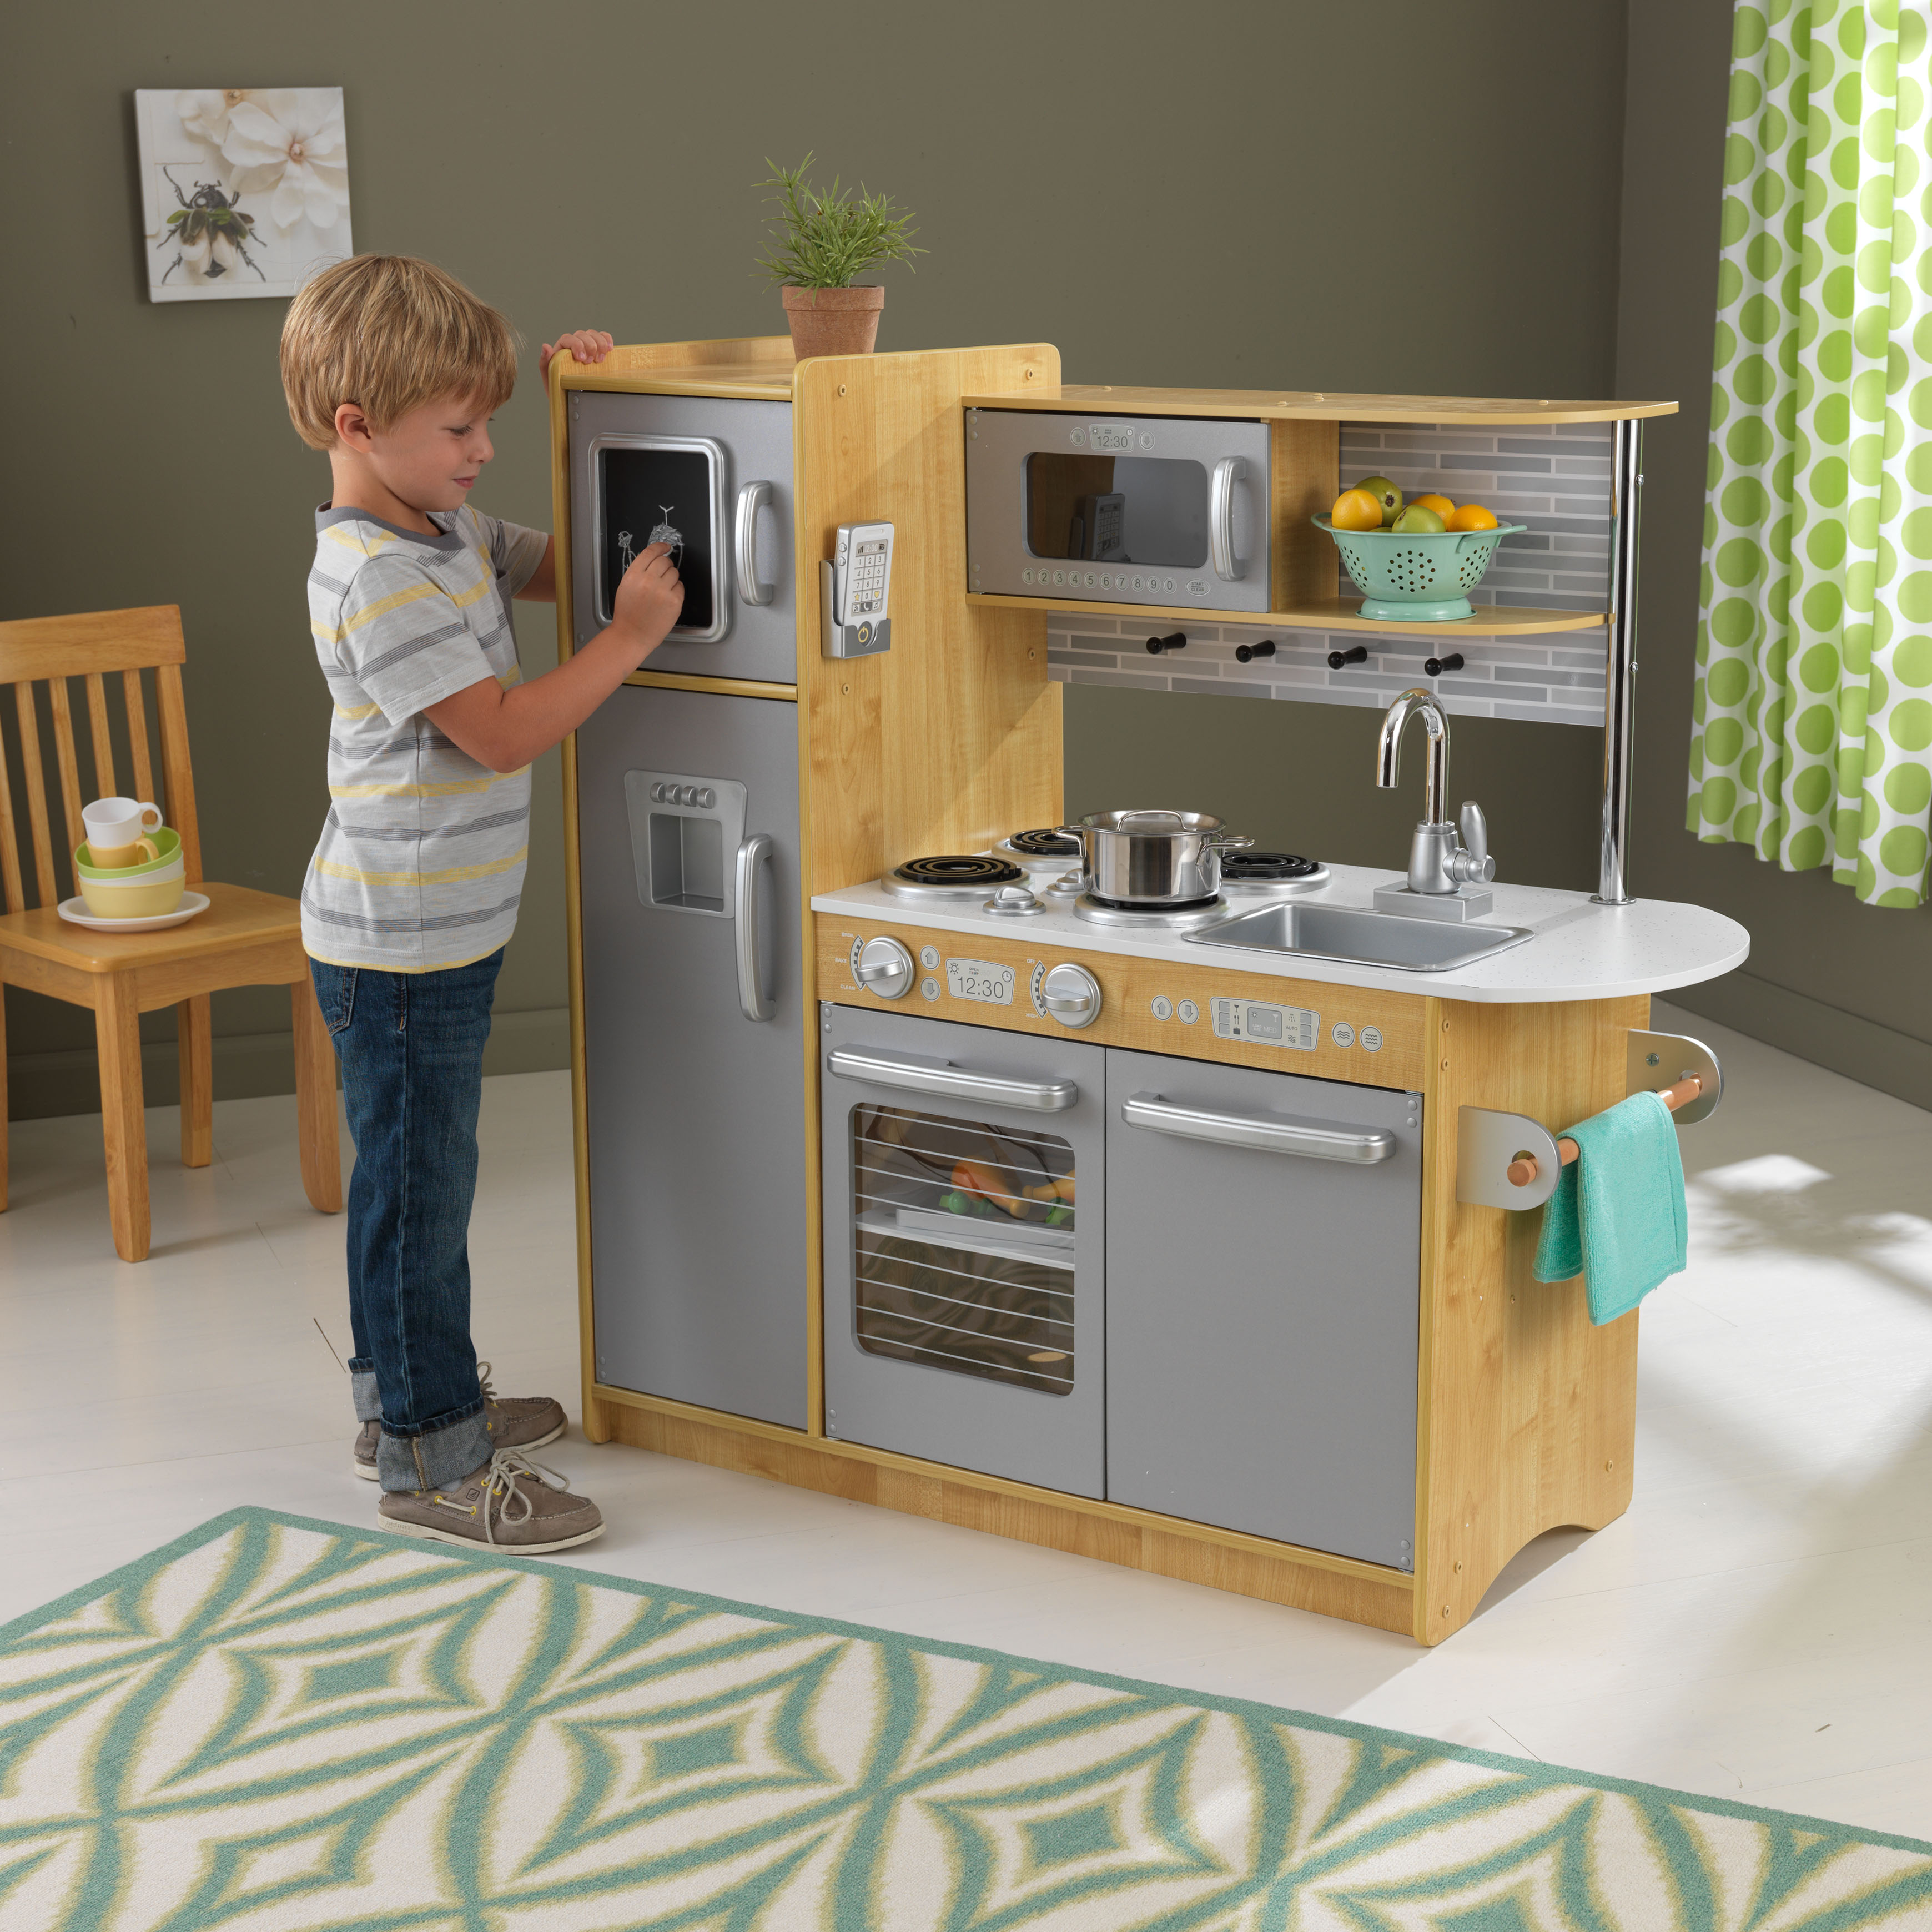 play kitchens for boys costco kitchen aid mixer natural girls pretend kids toy set smart sturdy cooking fun